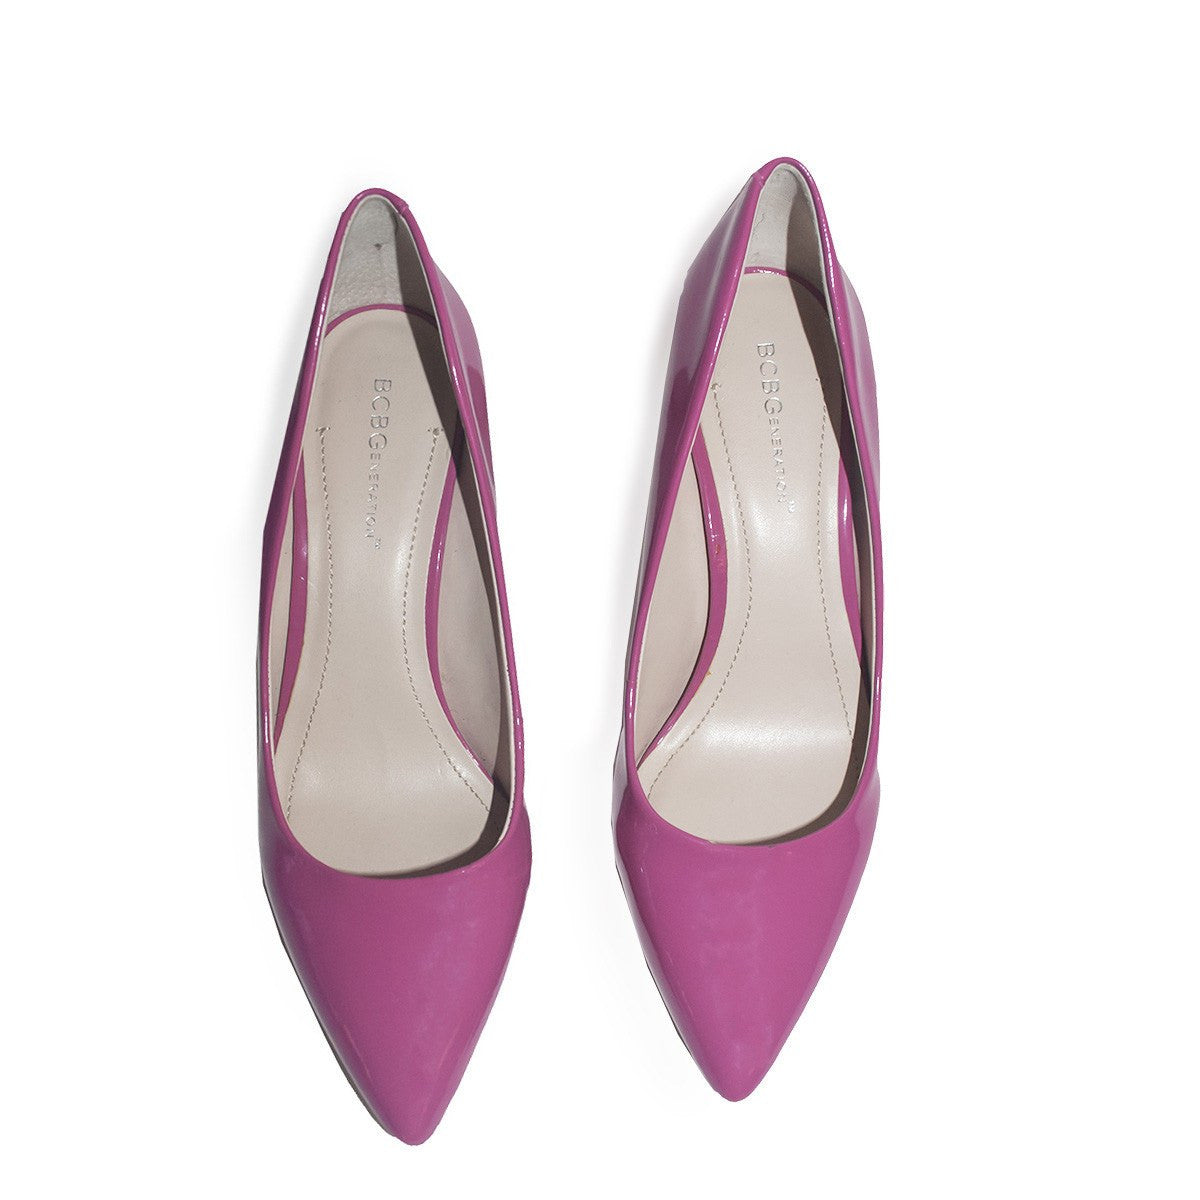 BCBGeneration High Heel Pump, Pink Patent Leather 2